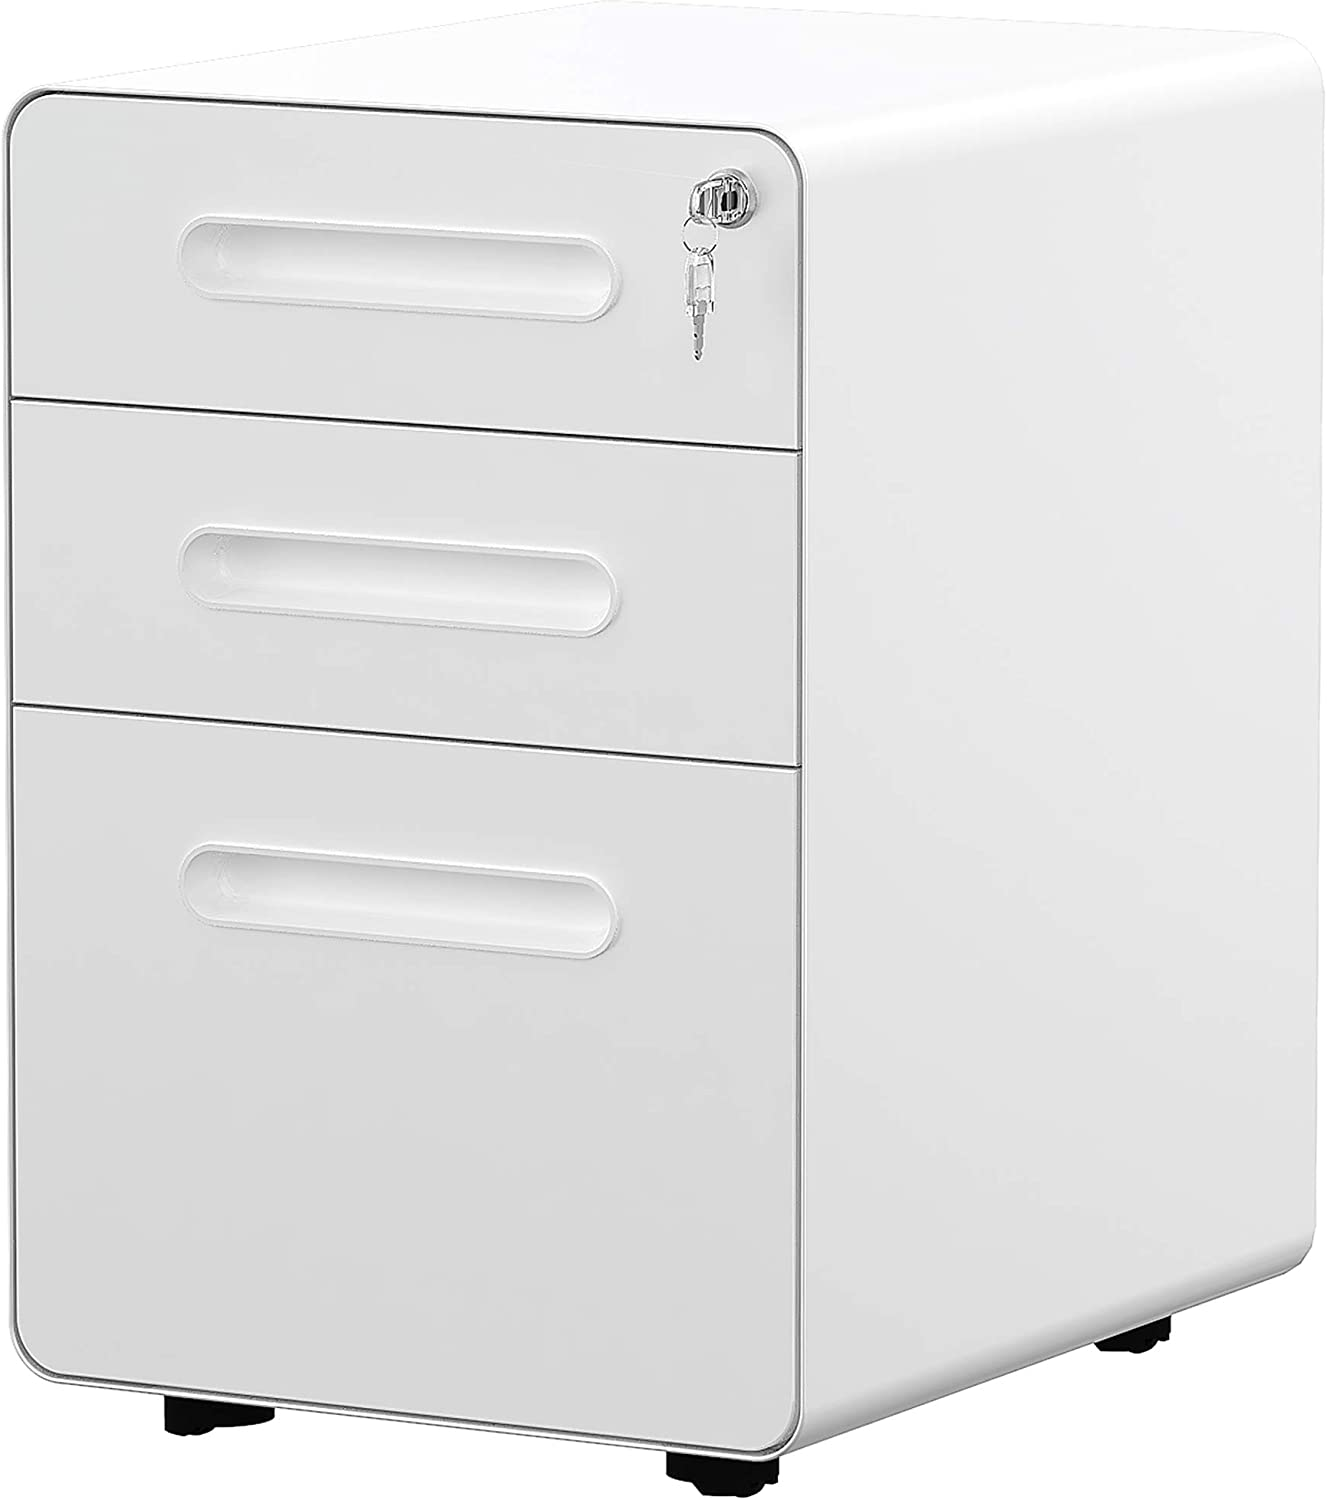 White YITAHOME 3-Drawer Office Storage Cabinet,/Metal Mobile File Cabinet with Keys and Anti-tilt System Home Commercial Pedestal File Cabinet Under Desk